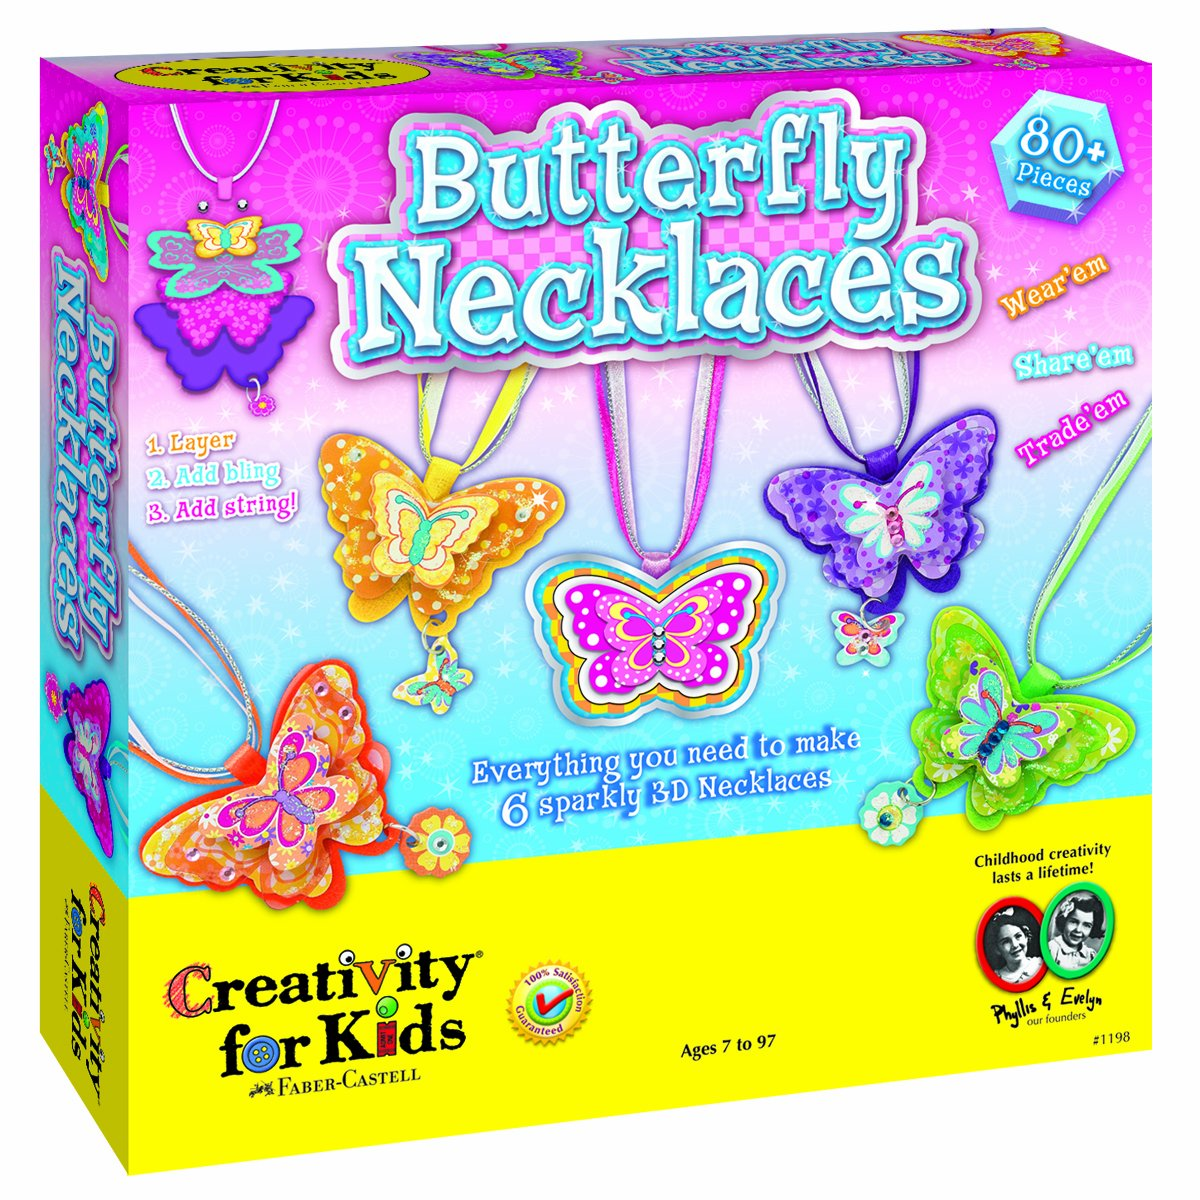 Butterfly Necklaces - Children's Jewelry Making Craft Kit